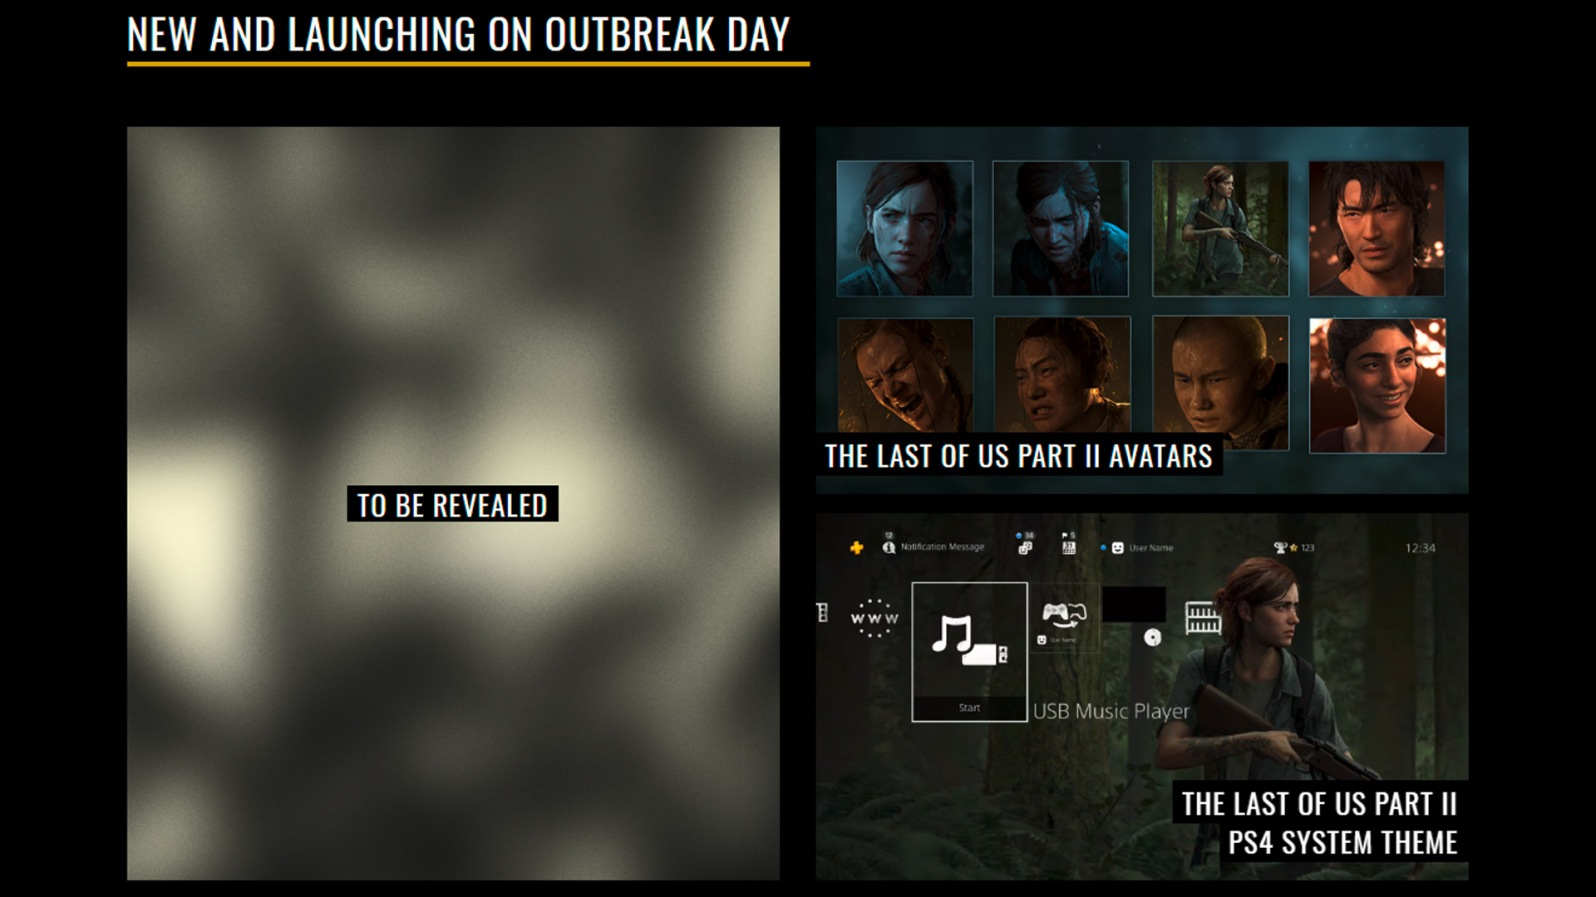 The Last of Us - Outbreak Day